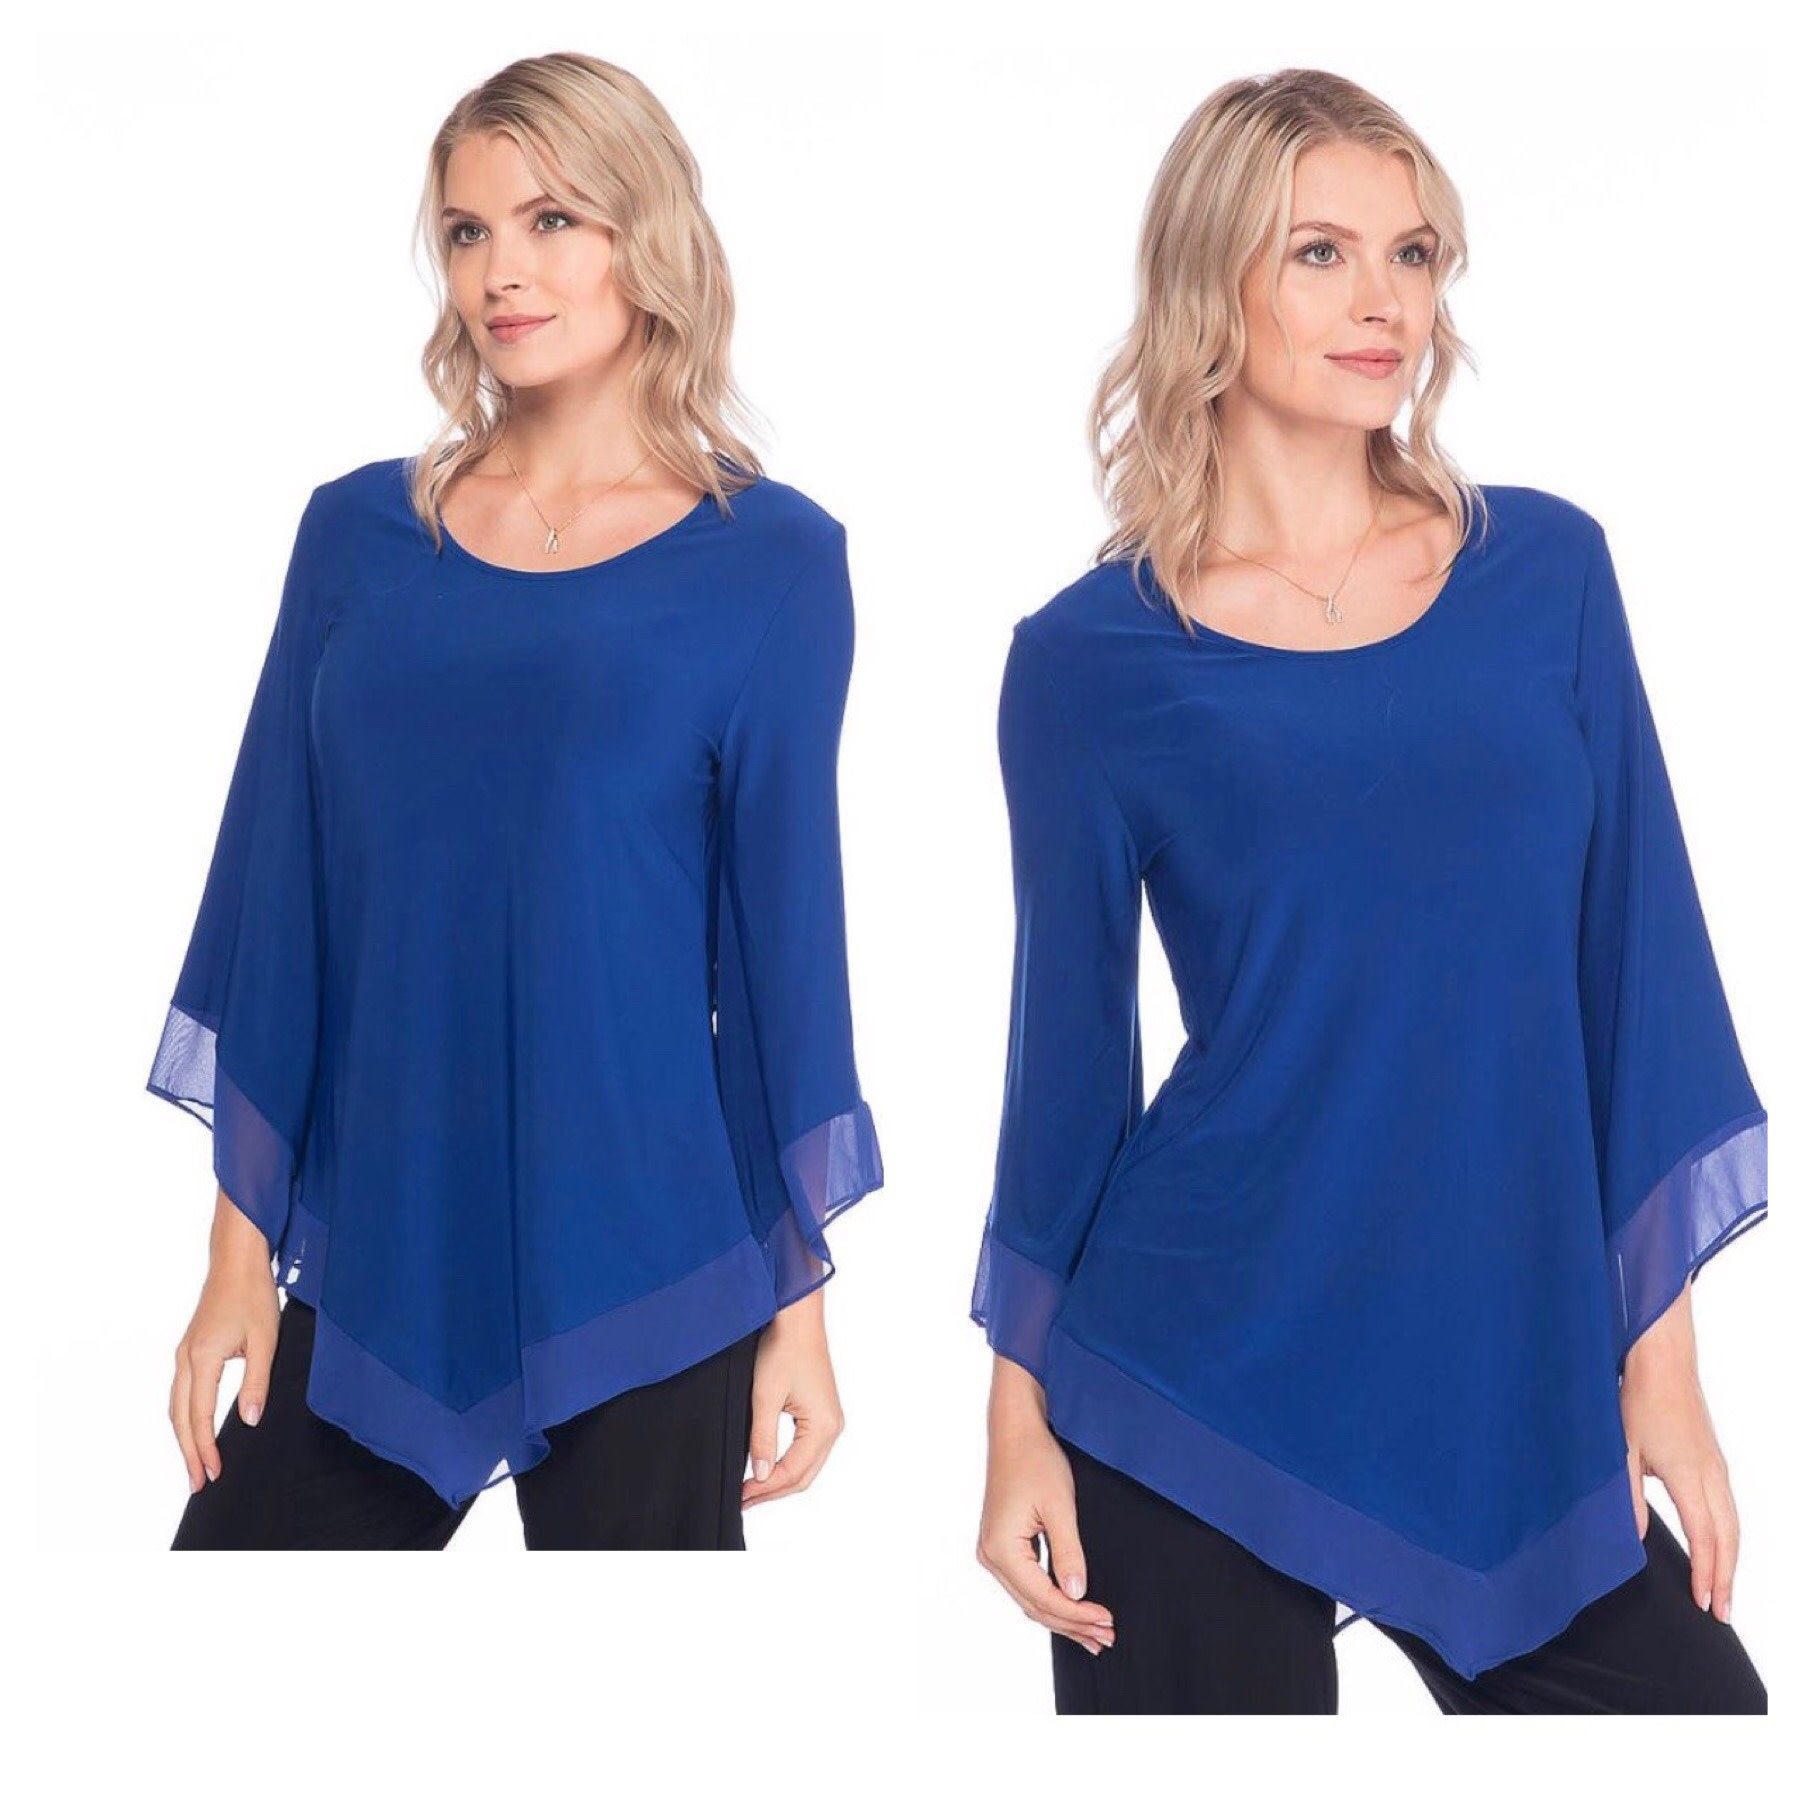 Scoop Neck Chiffon Trim Top